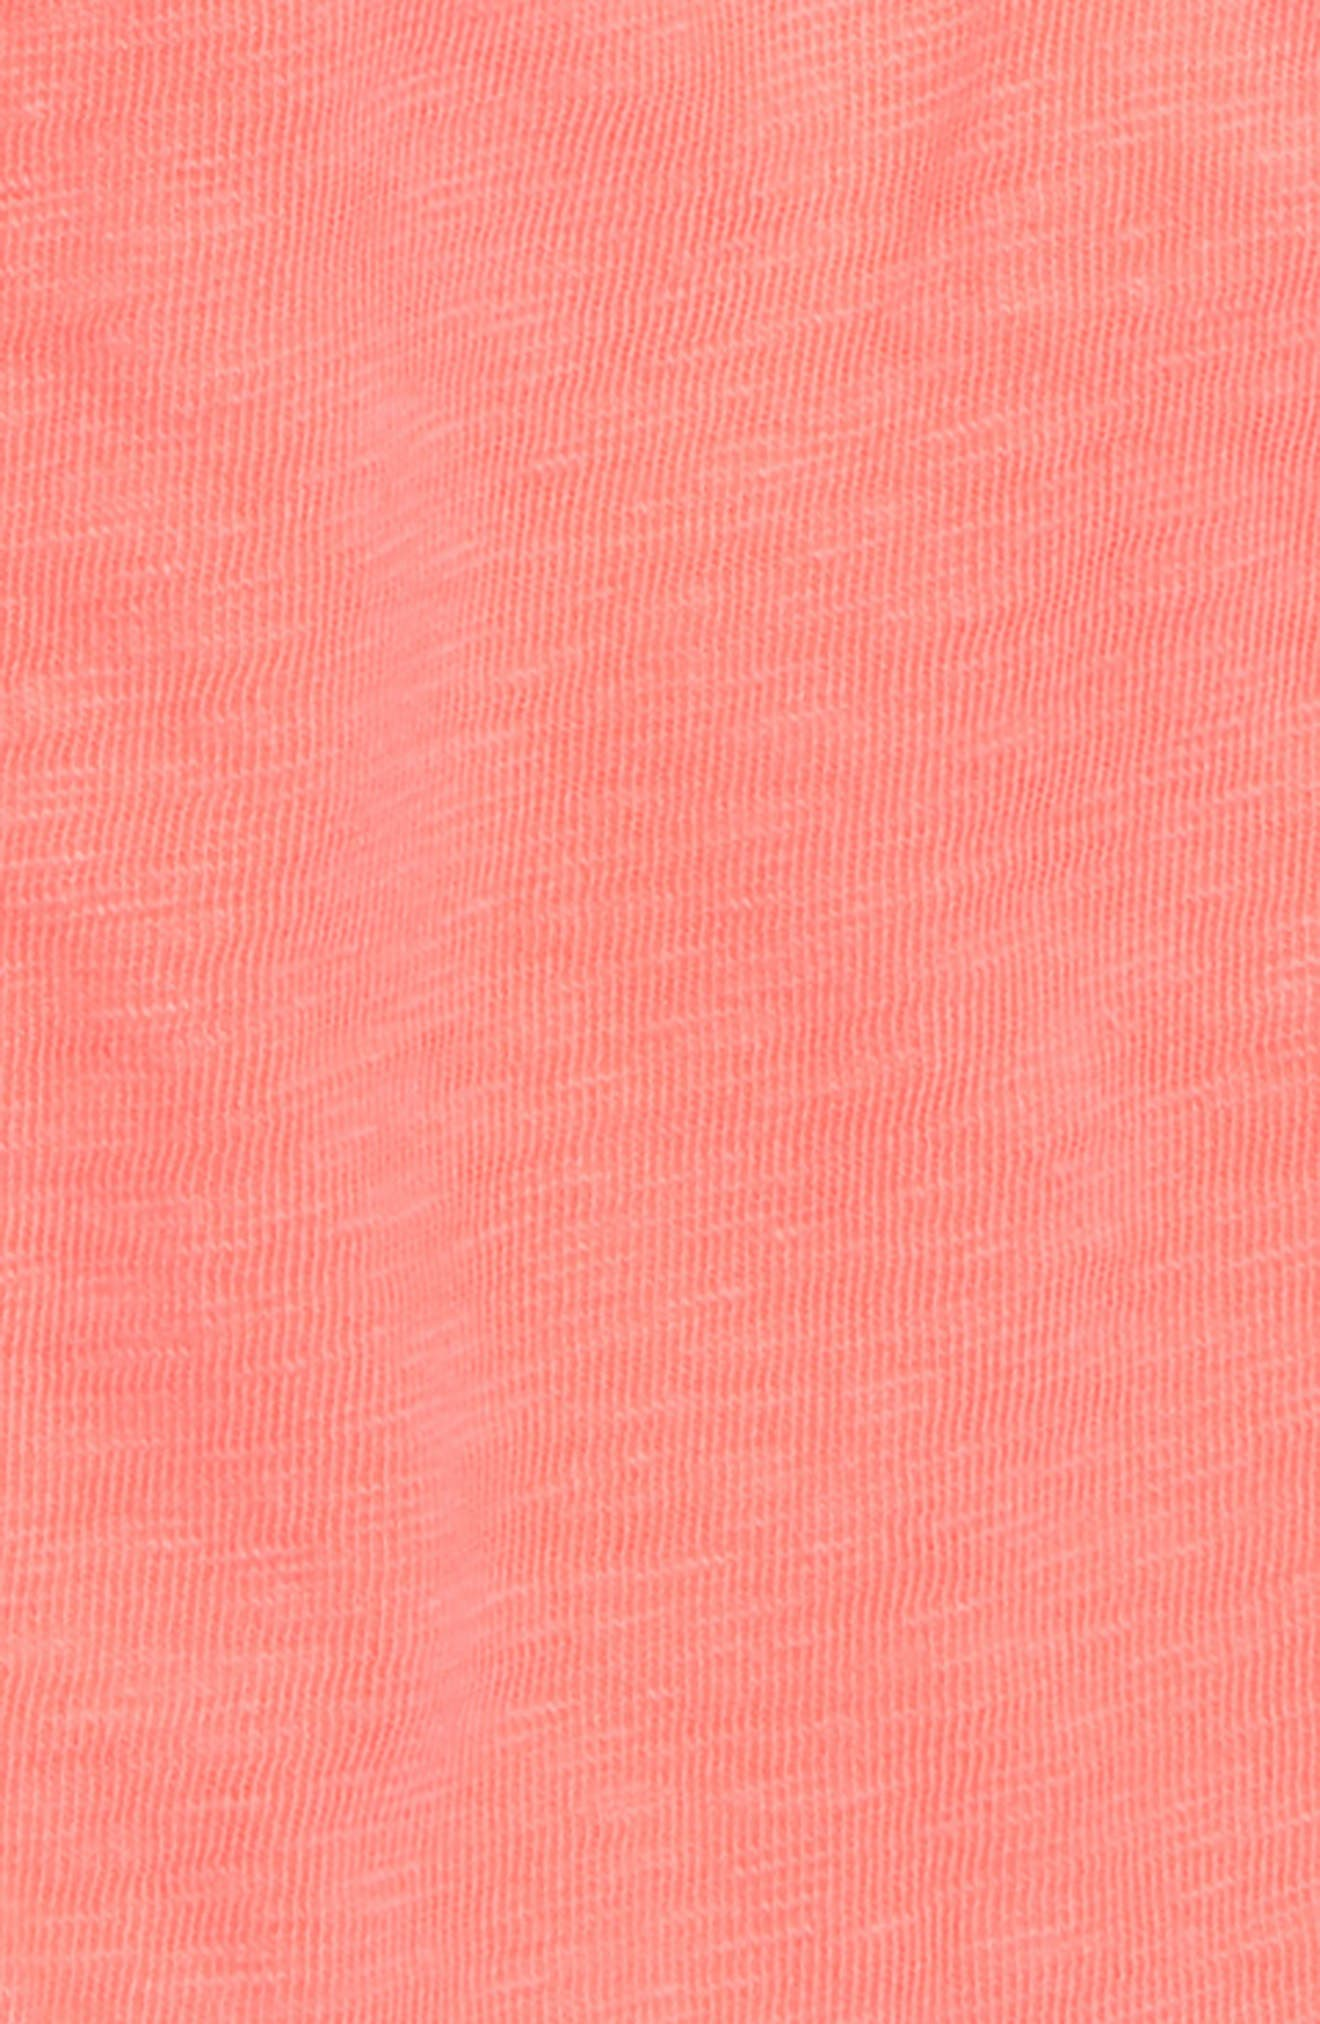 Ester Cotton Shorts,                             Alternate thumbnail 2, color,                             Neon Flamingo